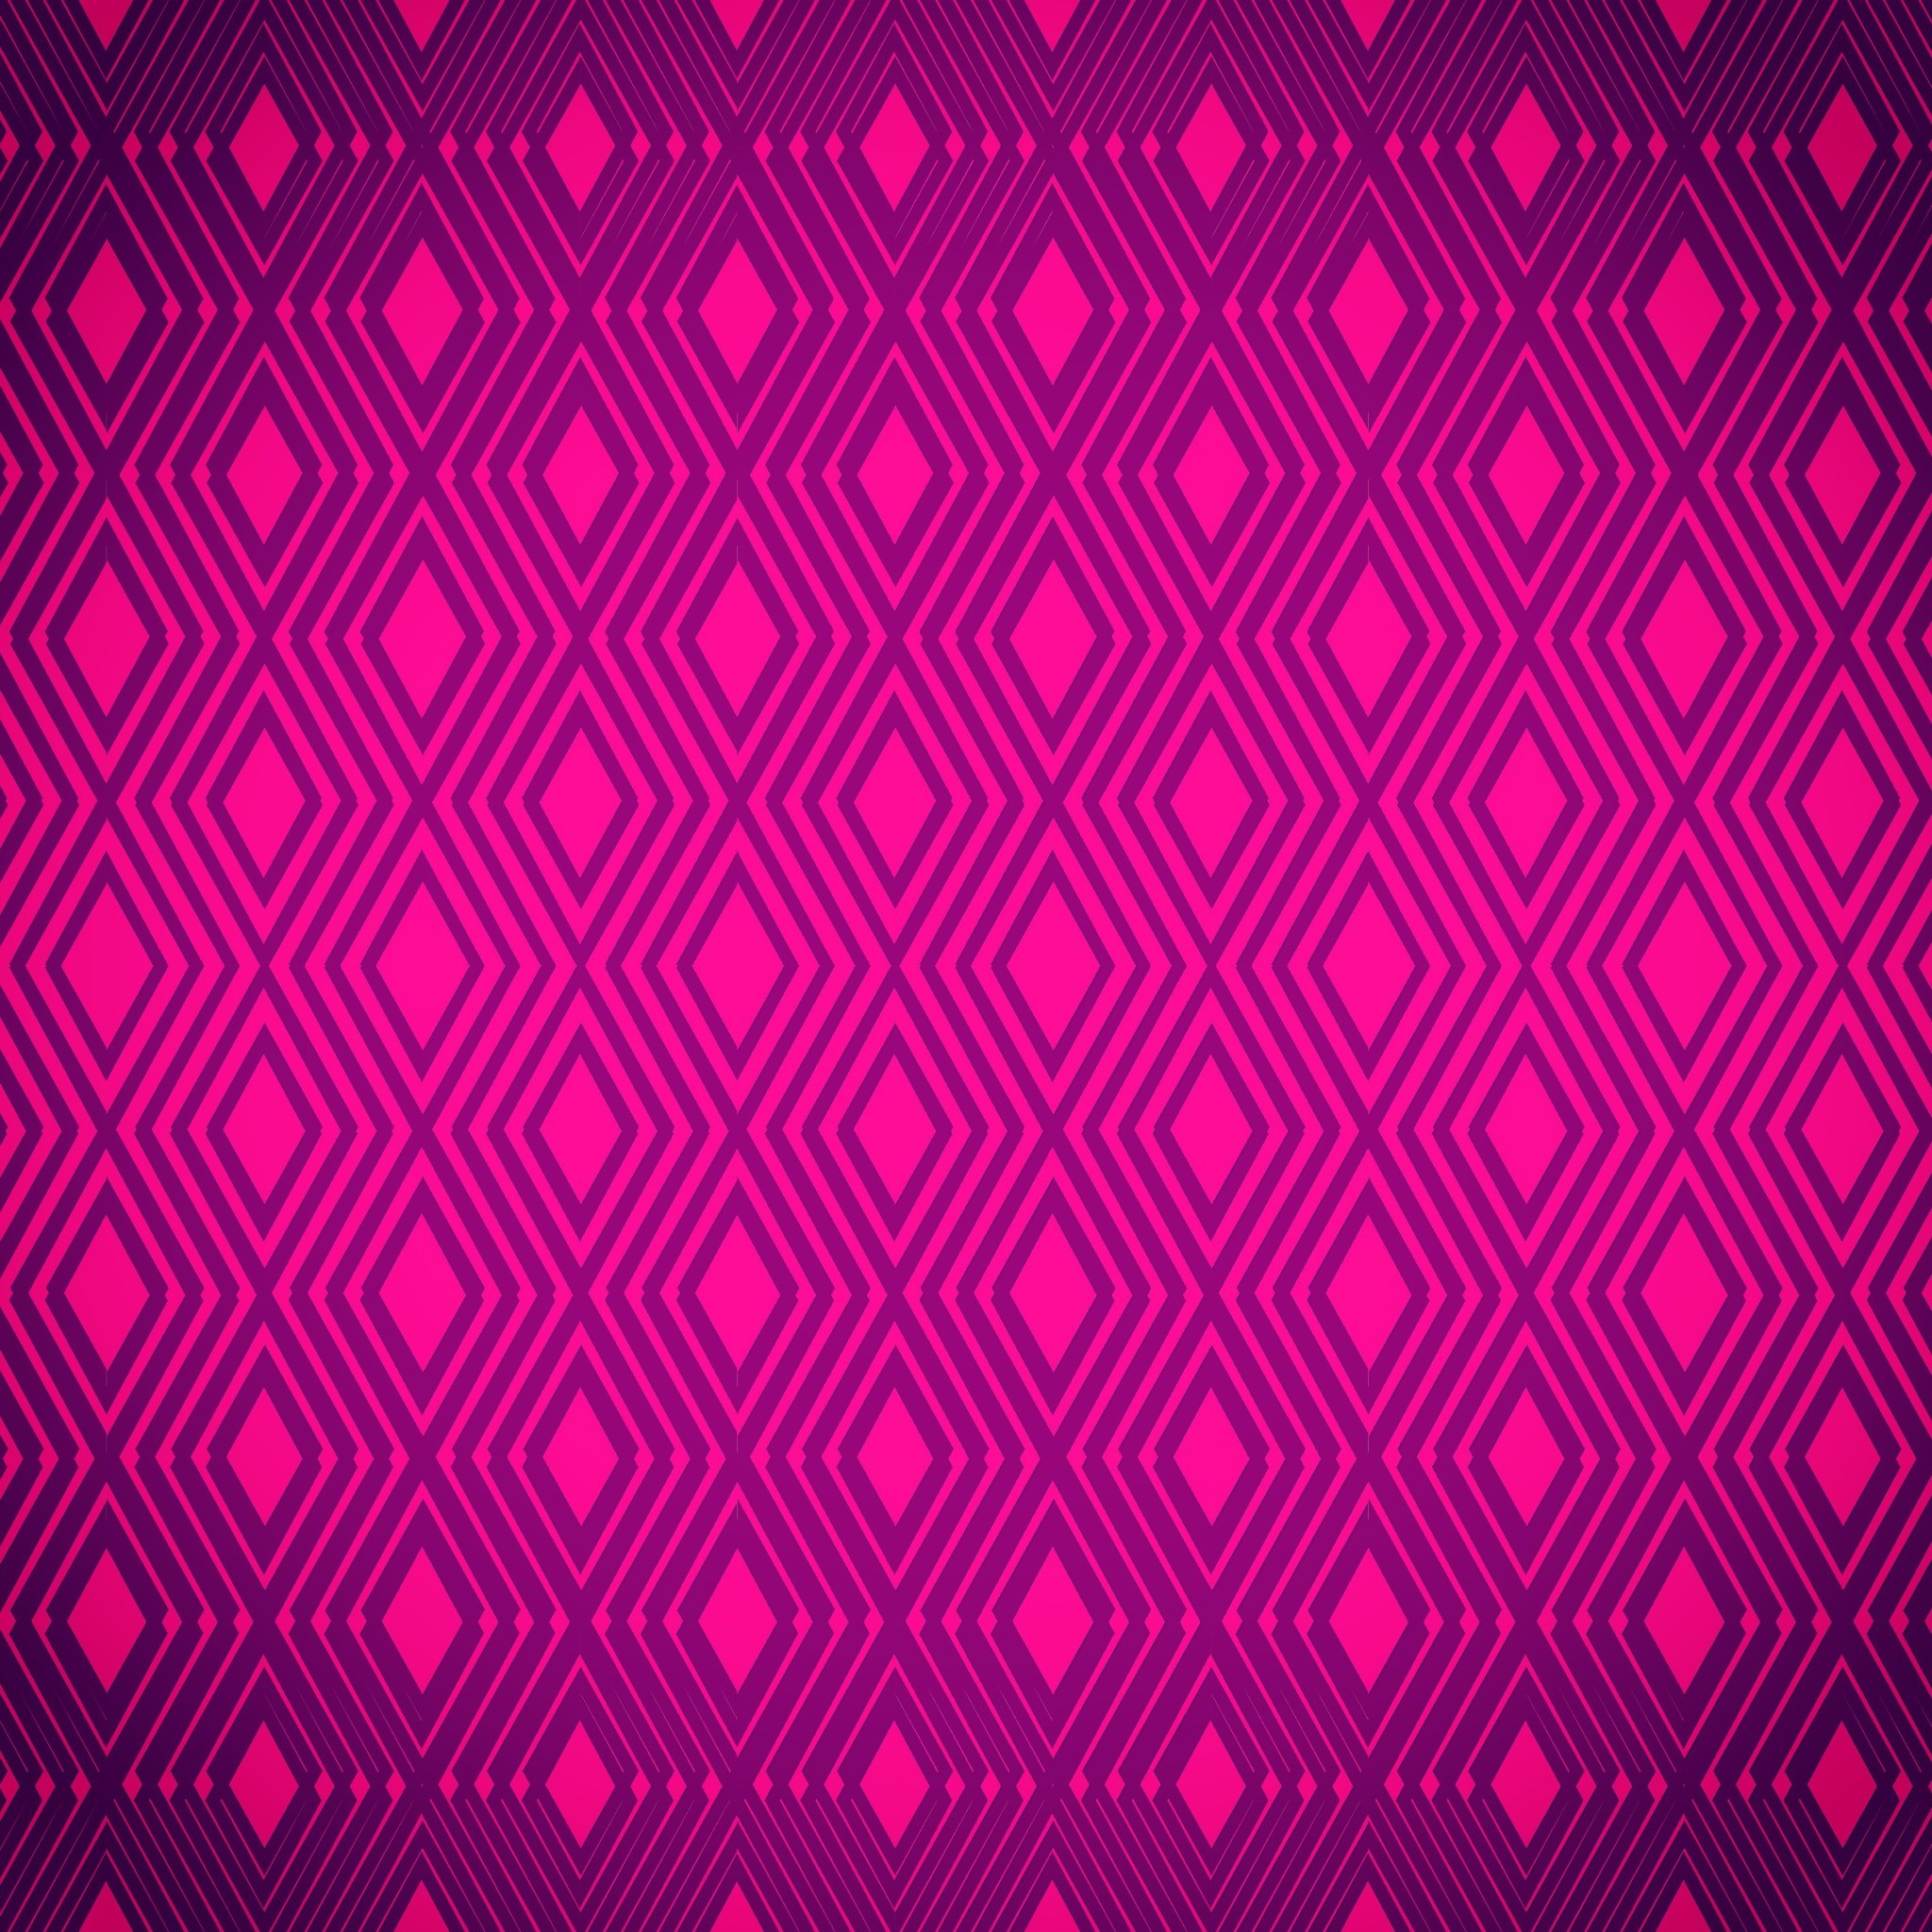 Colorful Iphone Wallpaper Girly: Girly Pink Wallpapers (72+ Images